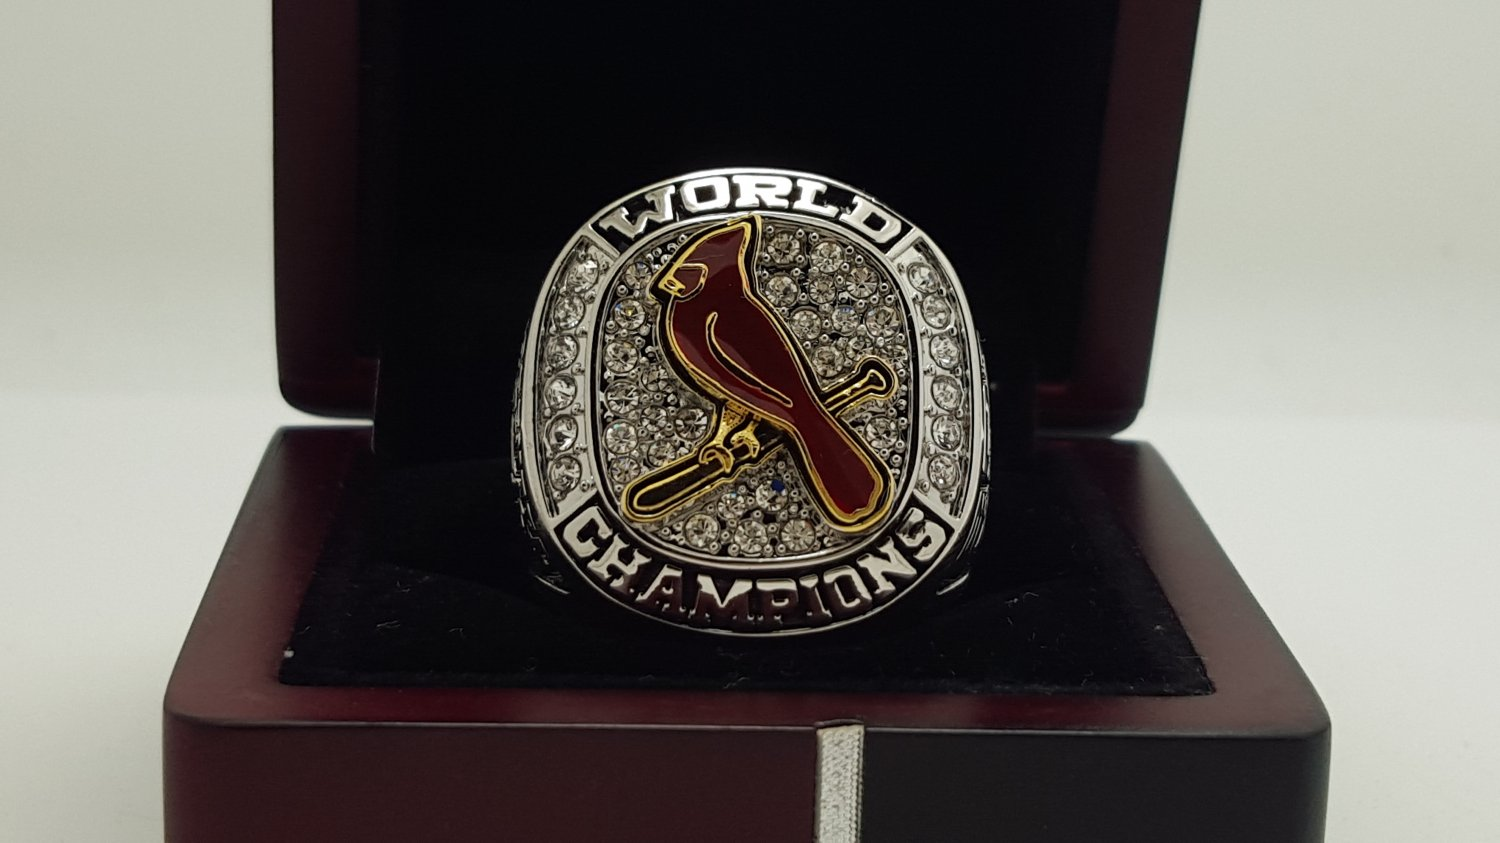 2011 St. Louis Cardinals world series Championship Ring 8-14 Size